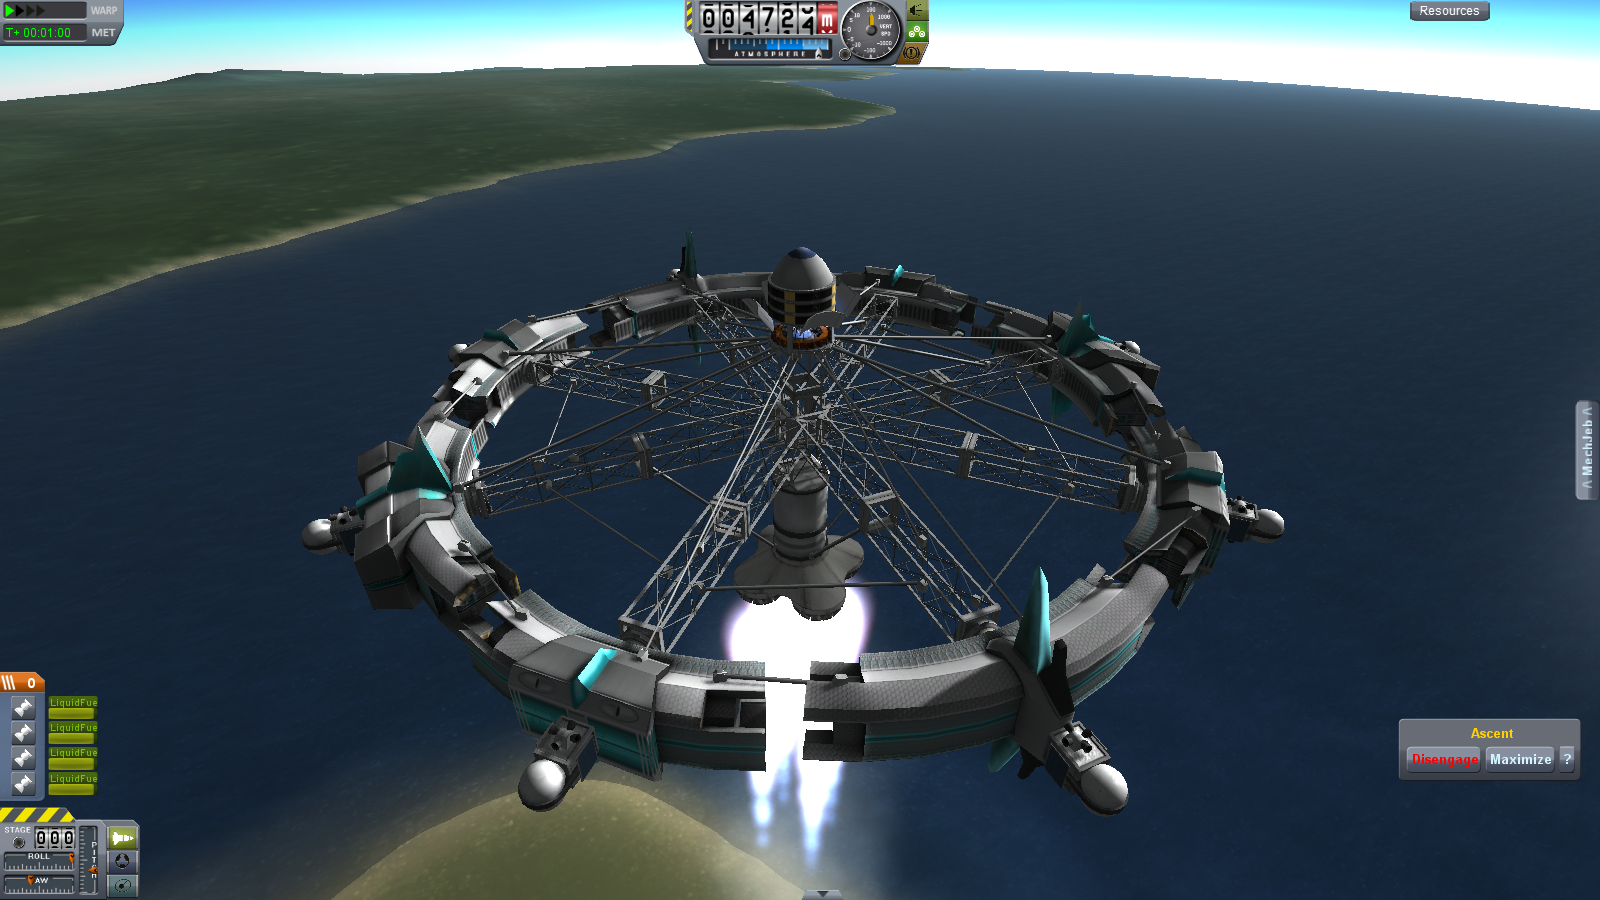 kerbal space program shuttle designs - photo #30